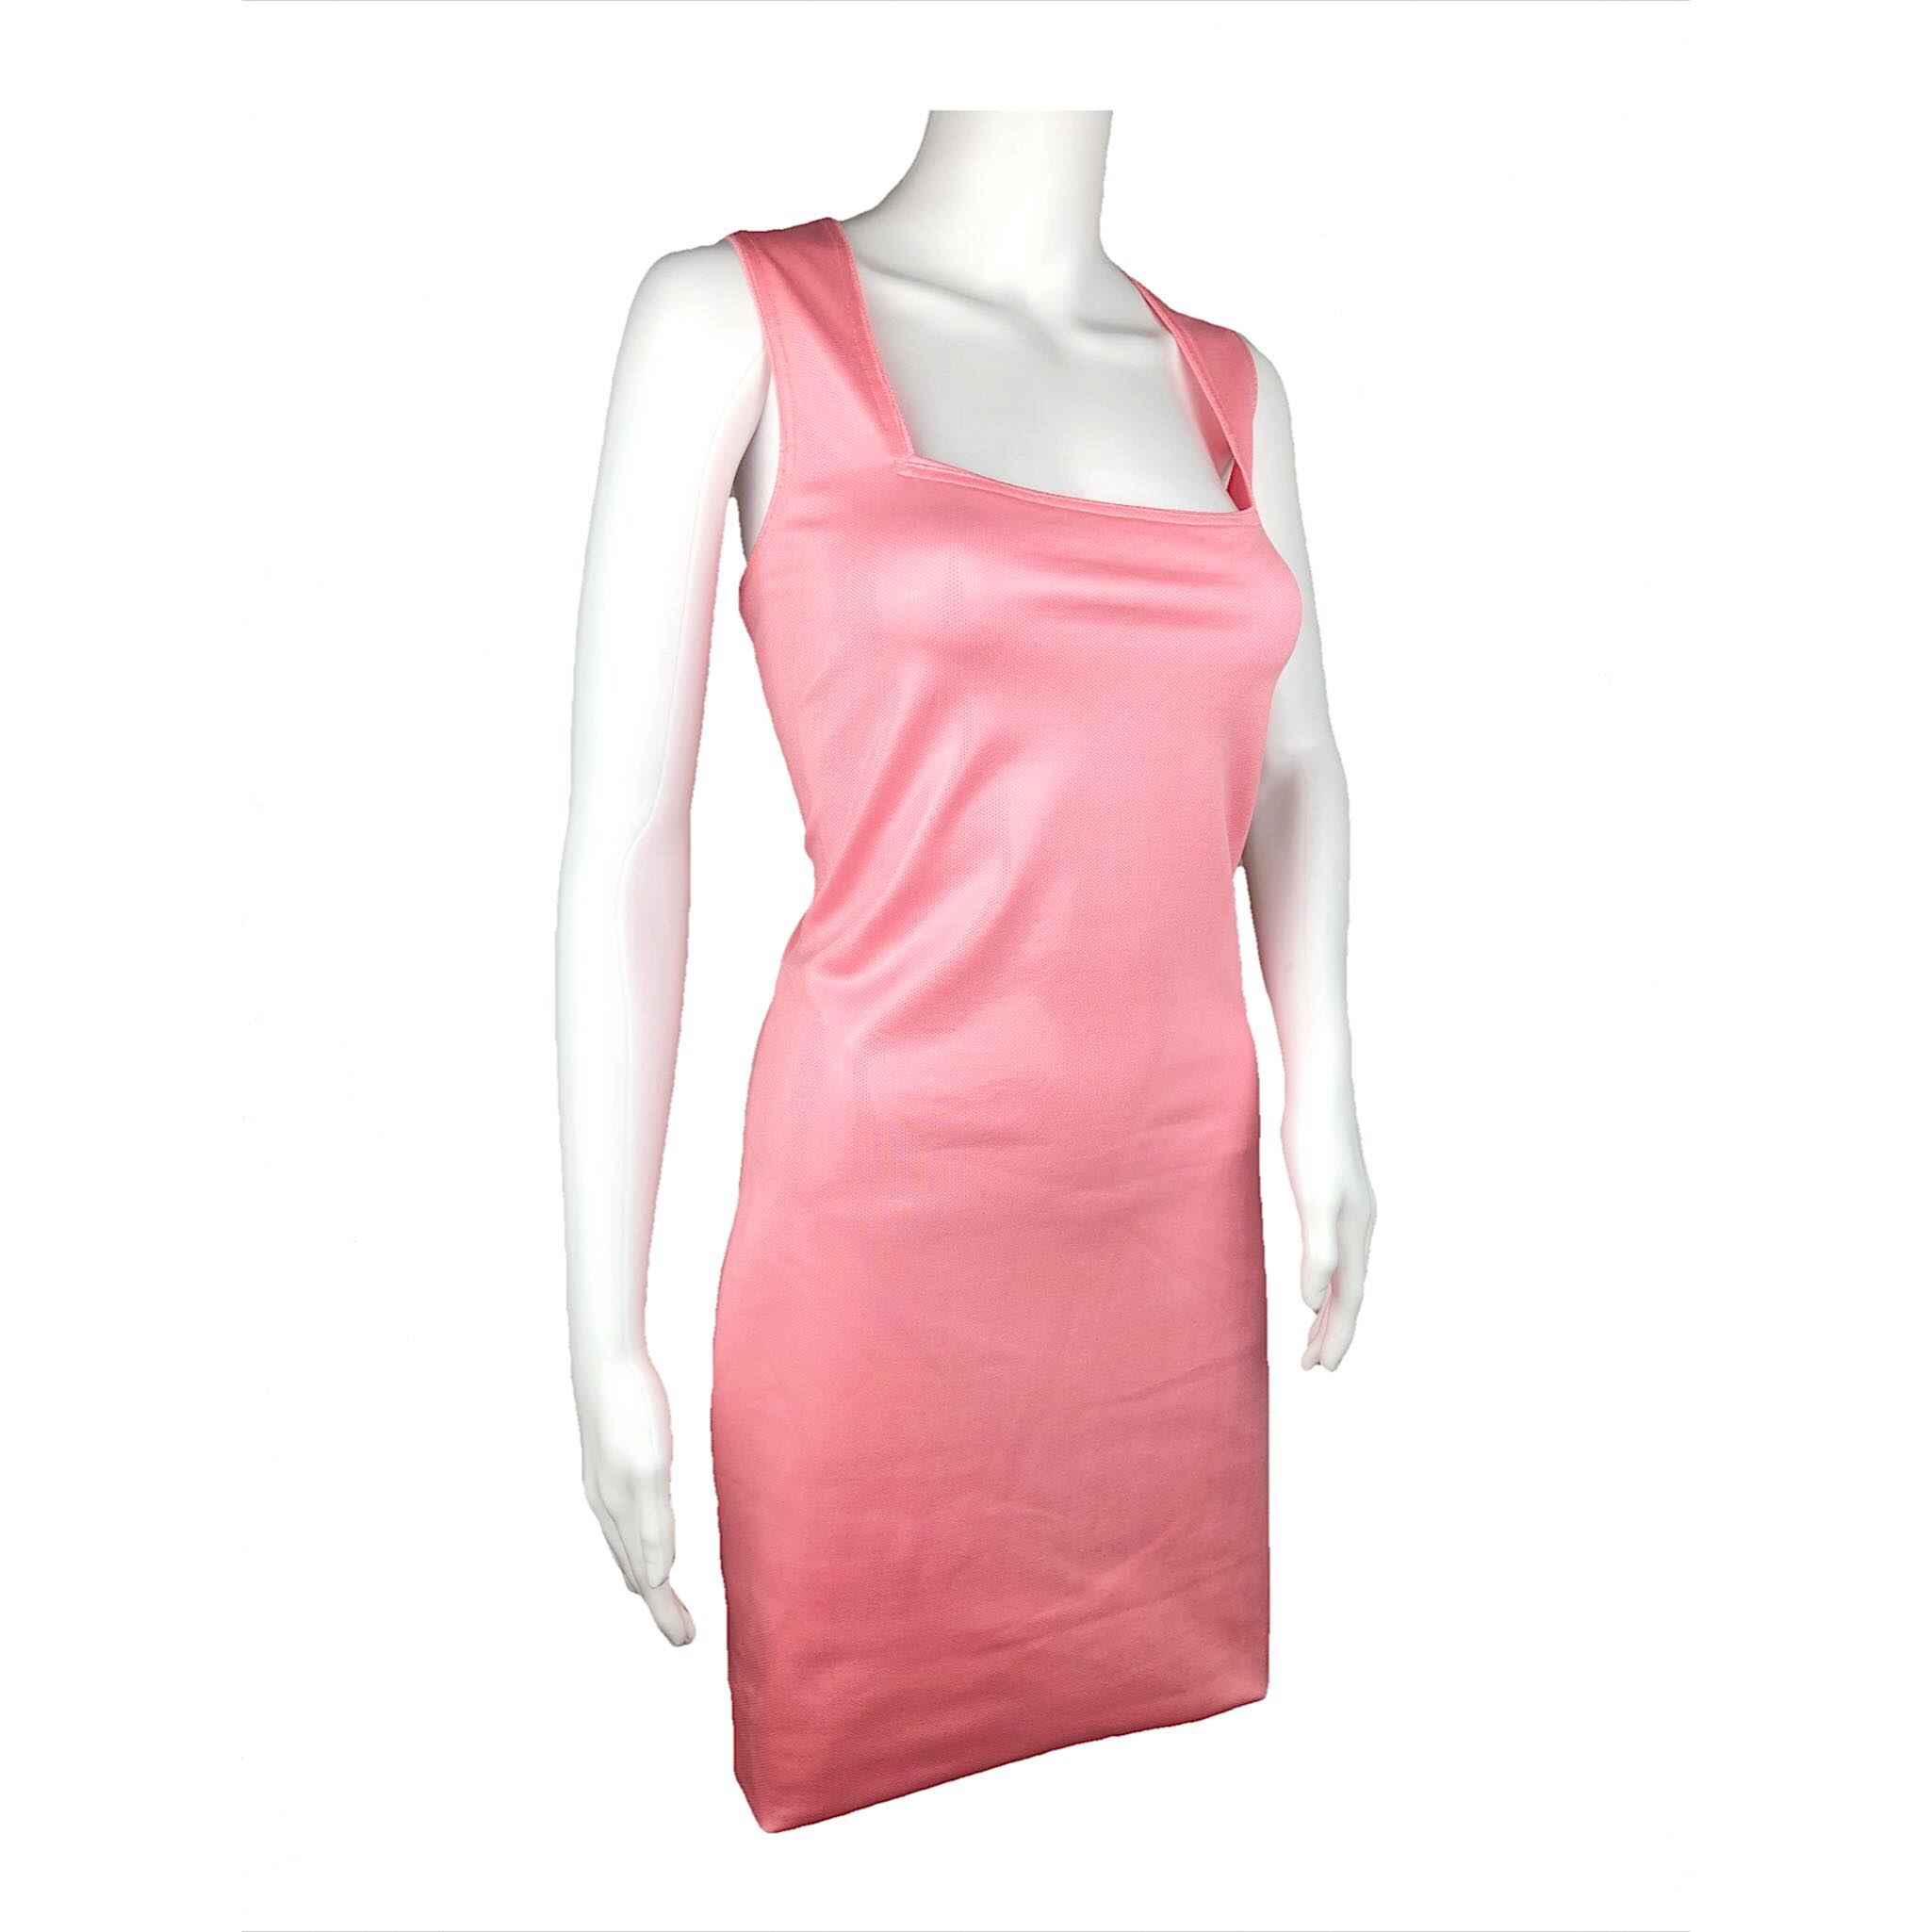 #VTG4BLM SALE Versace Istante pink dress